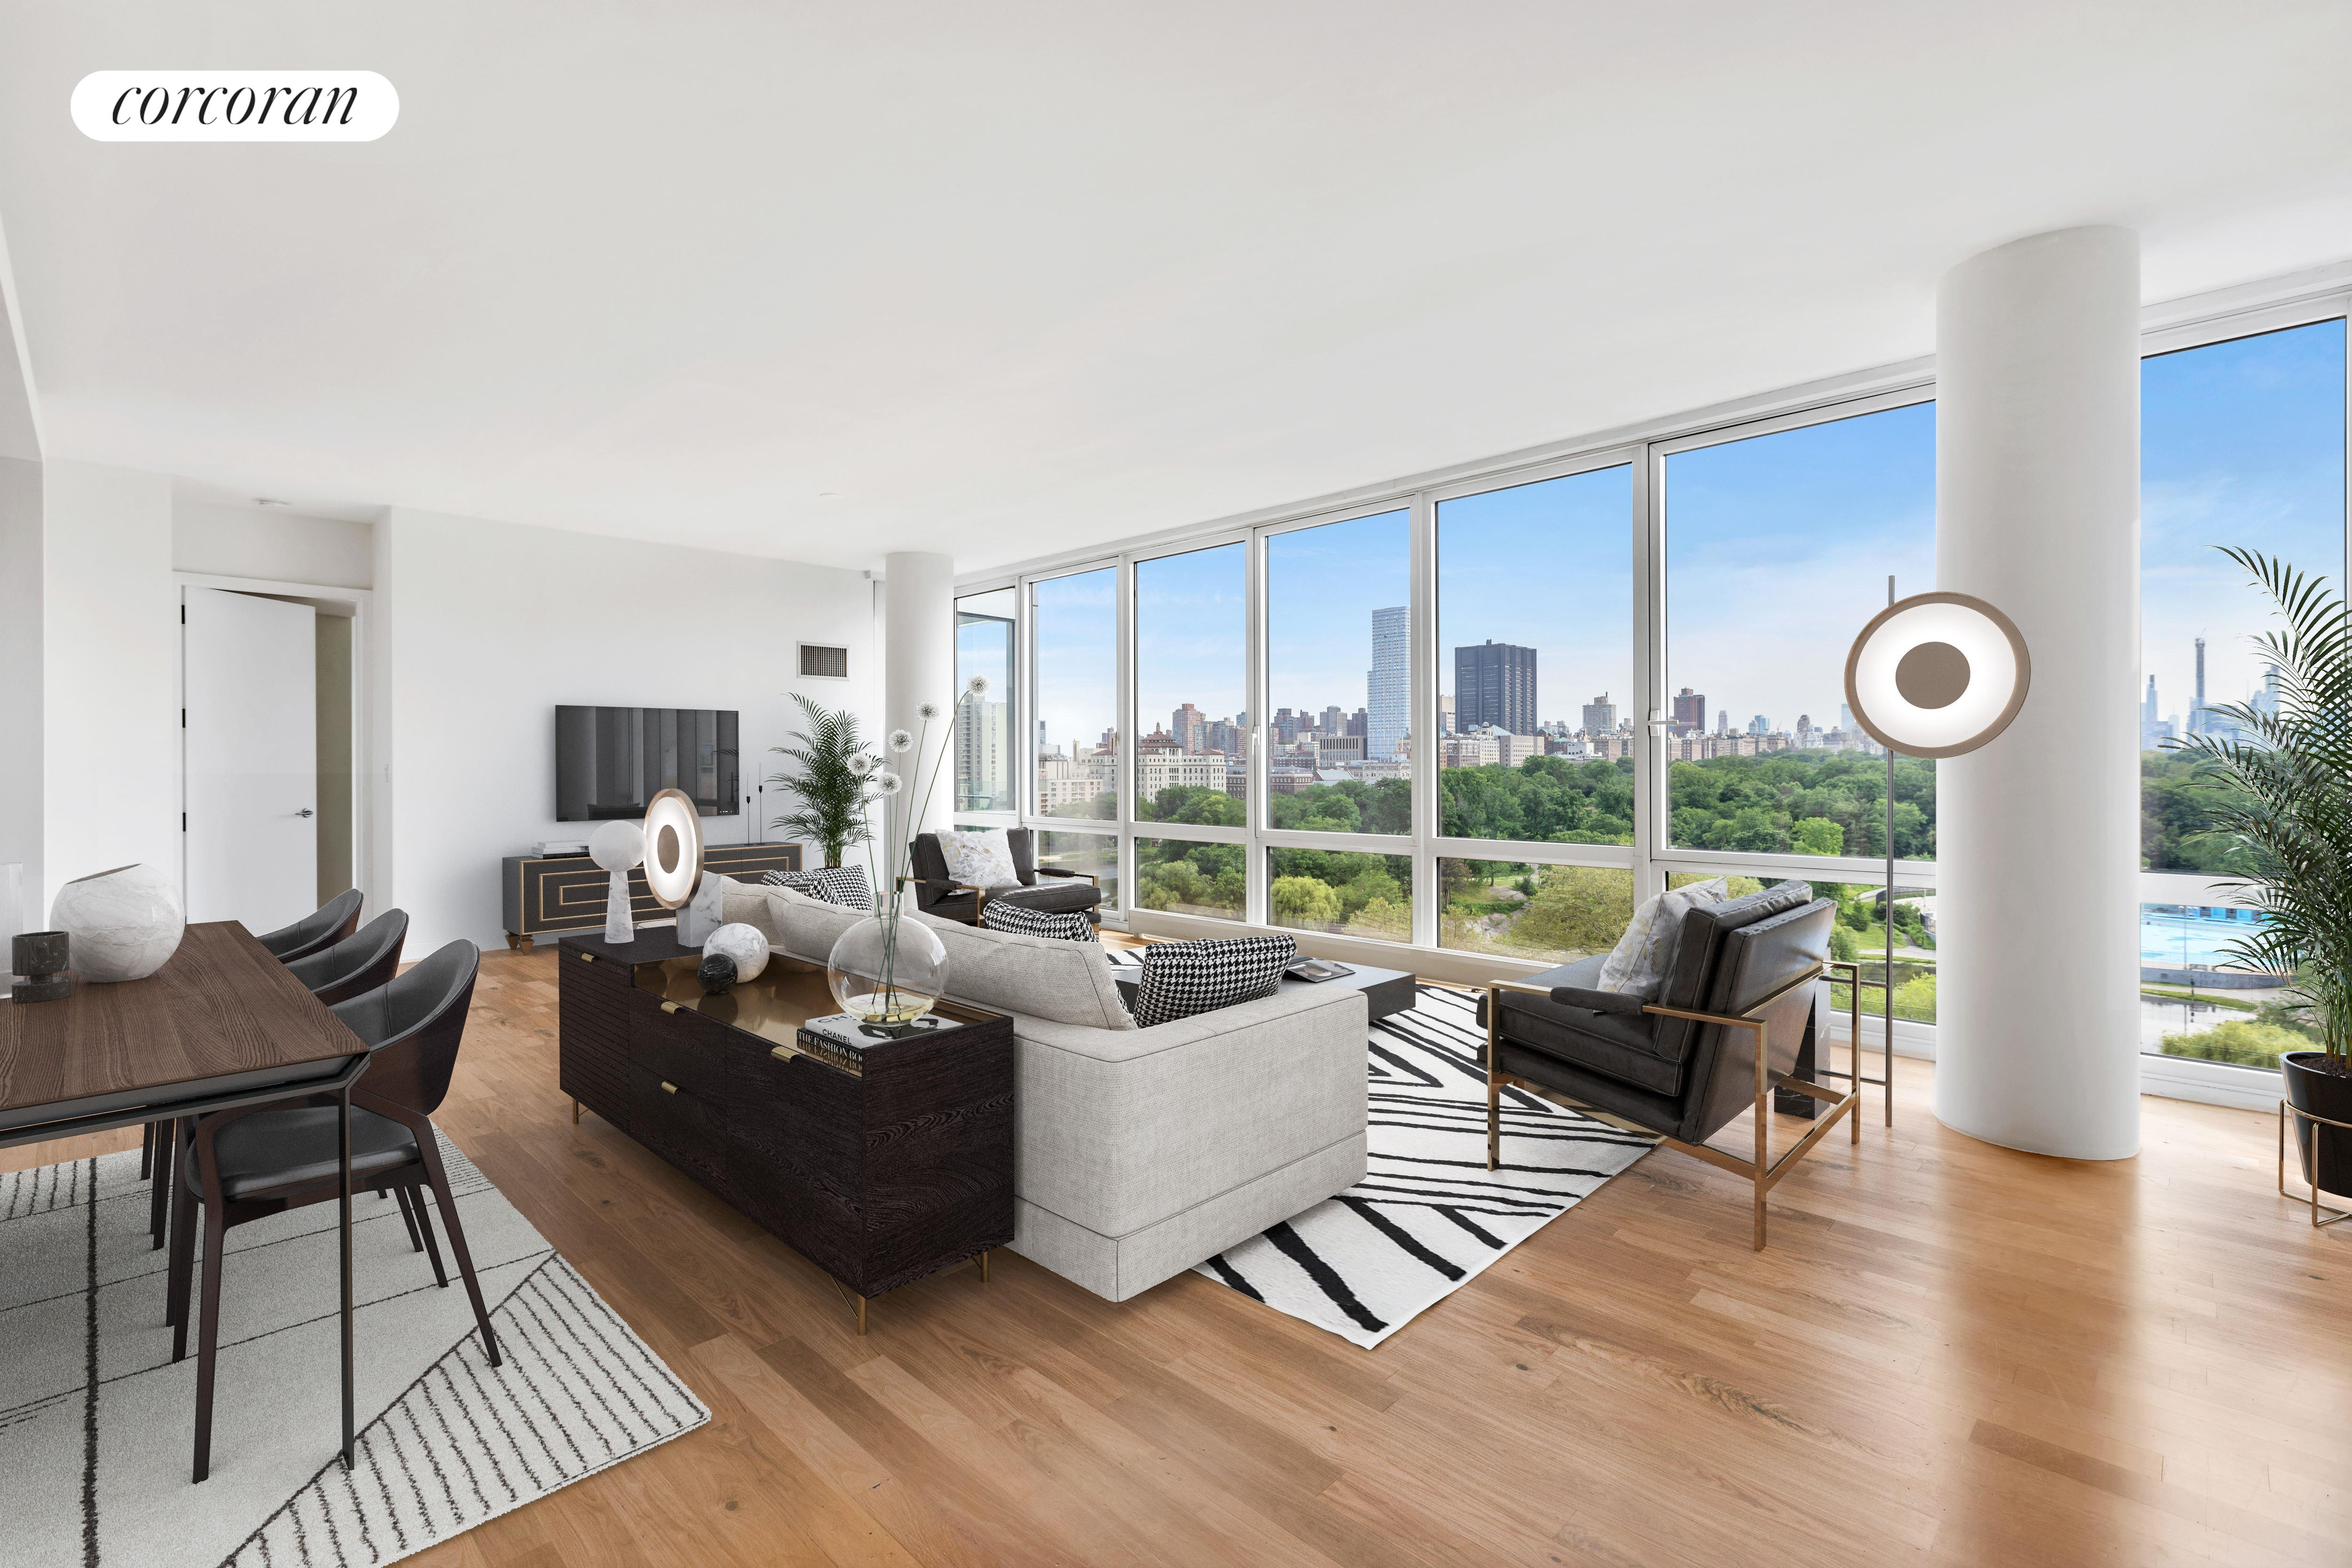 Entering this bright split two bedroom and two and a half bathroom residence, Central Park views through the floor-to-ceiing windows become the immediate focal point. All rooms (except the bathrooms) face South over Central Park with the Central Park South and Billionaire Rows skyline at the horizon.  The apartment has Oak hardwood floors throughout.  A unique 48 SF balcony can be entered through the master bathroom.  Off the sun-flooded living room is the kitchen with a Statuary Marble countertop, Wenge cabinets, and all Viking appliances, such as dishwasher, oven range, fridge and microwave.The bright master bedroom has a walk-in closet and the ensuite master bathroom features a Calcutta marble vanity top, double sink, shower and full soaking bathtub. The washer/dryer is off the powder room. 111 Central Park North Condominium features 24/7 doorman, concierge, live-in super, second floor common roof deck, gym, party/play room and cold storage. With only 43 units, the building has a boutique feel to it. It is ideally located. Central Park is just across the street. The 2/3 train entrance is right there at the corner of Central Park North and Lenox. The 5th Avenue and Madison Avenue bus stops are in front of the building. The location is 15/20 minutes to Times Square and Lincoln Center. Lasker Rink (and Pool), the Dana Discovery Center, St John the Divine, Museum Mile, and the Conservatory Garden are in close proximity as are George Washington Bridge, Triborough Bridge, and all roads to New Jersey, Connecticut, and Upstate New York which allows for a quick escape out of Manhattan. Parking Spot included. Pets are allowed.